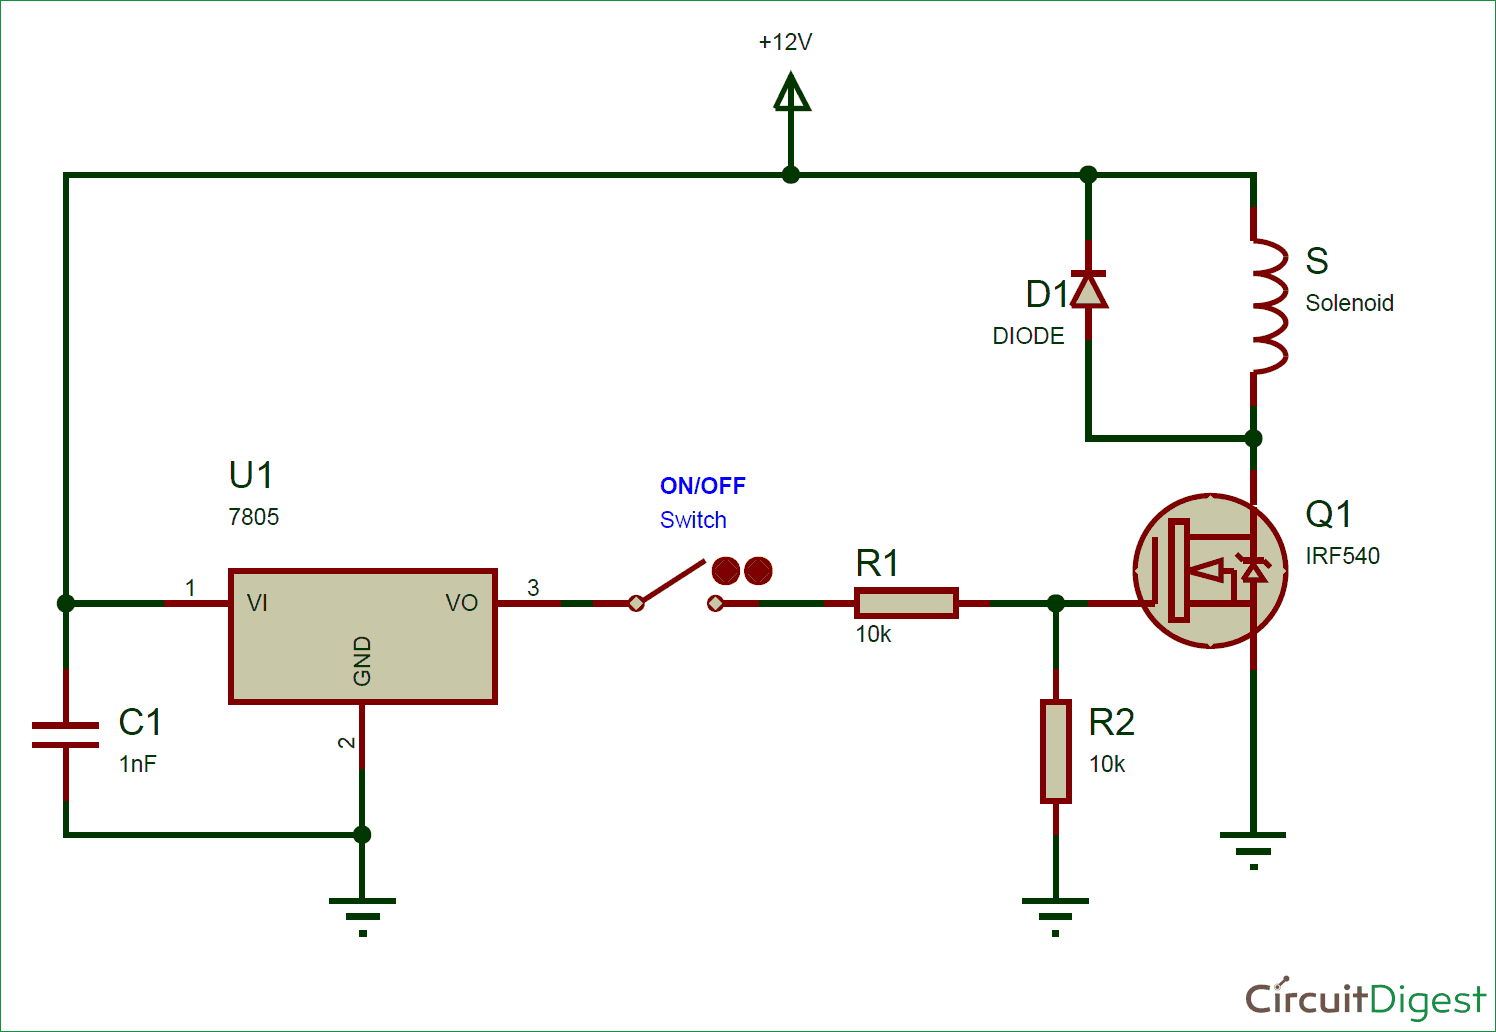 solenoid valve diagram how to understand home ethernet wiring driver circuit